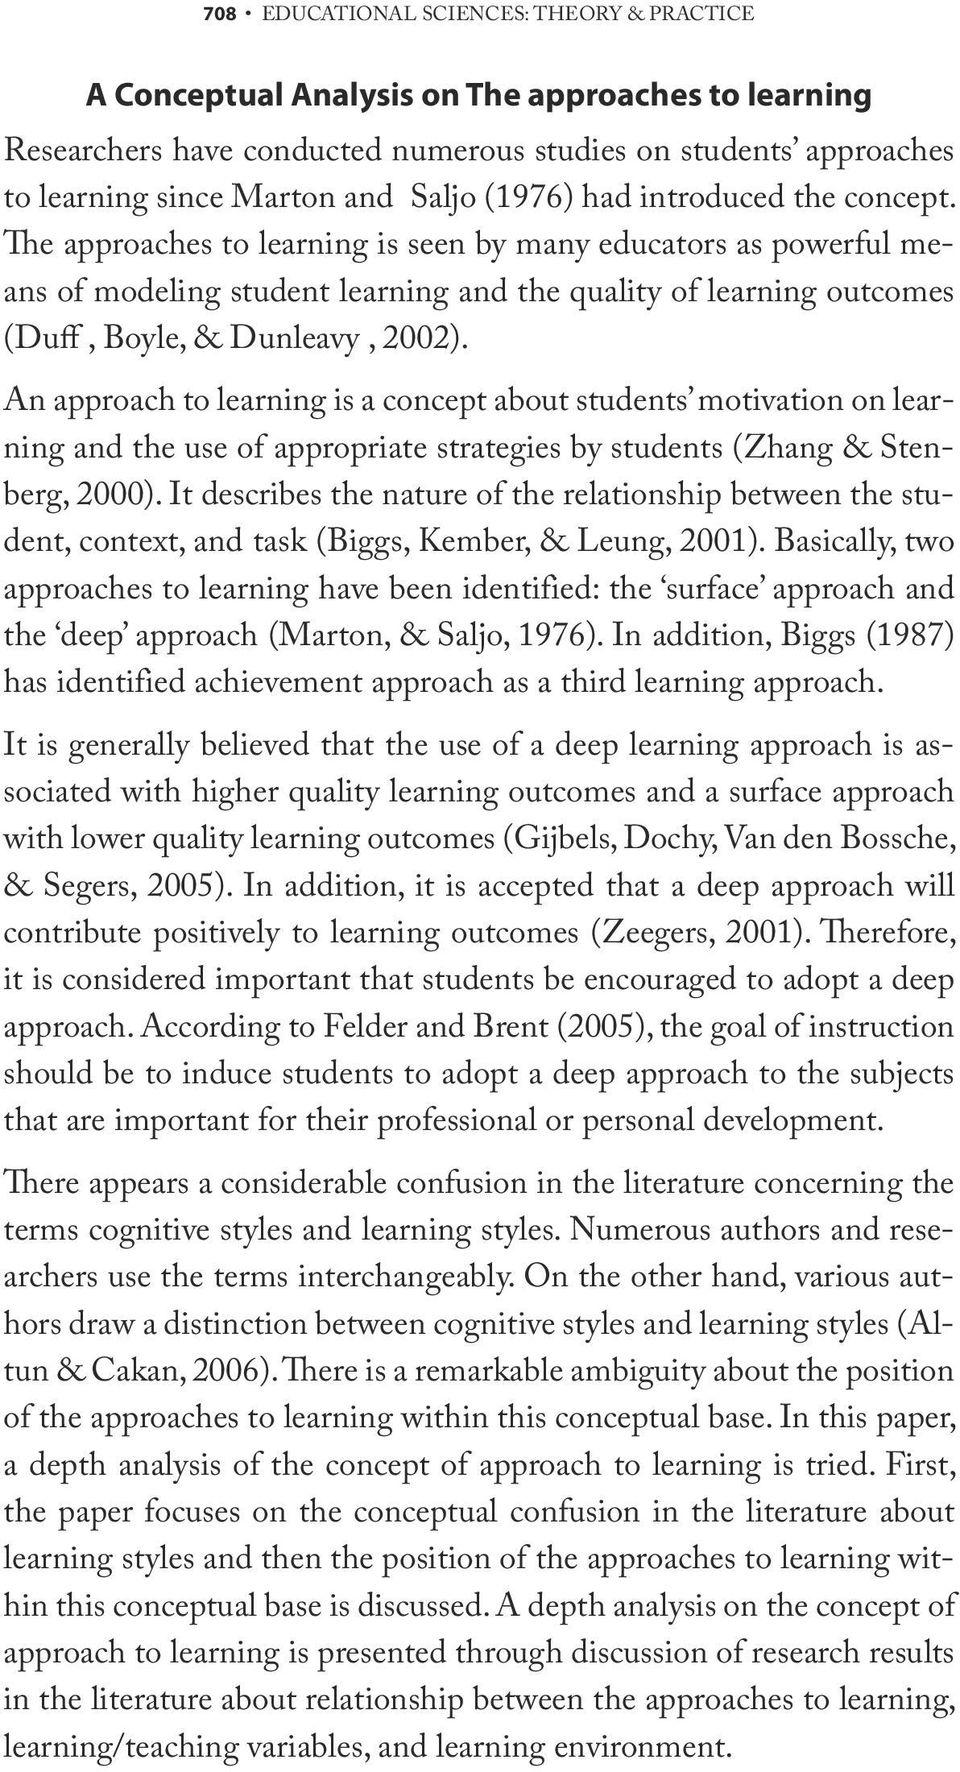 The approaches to learning is seen by many educators as powerful means of modeling student learning and the quality of learning outcomes (Duff, Boyle, & Dunleavy, 2002).